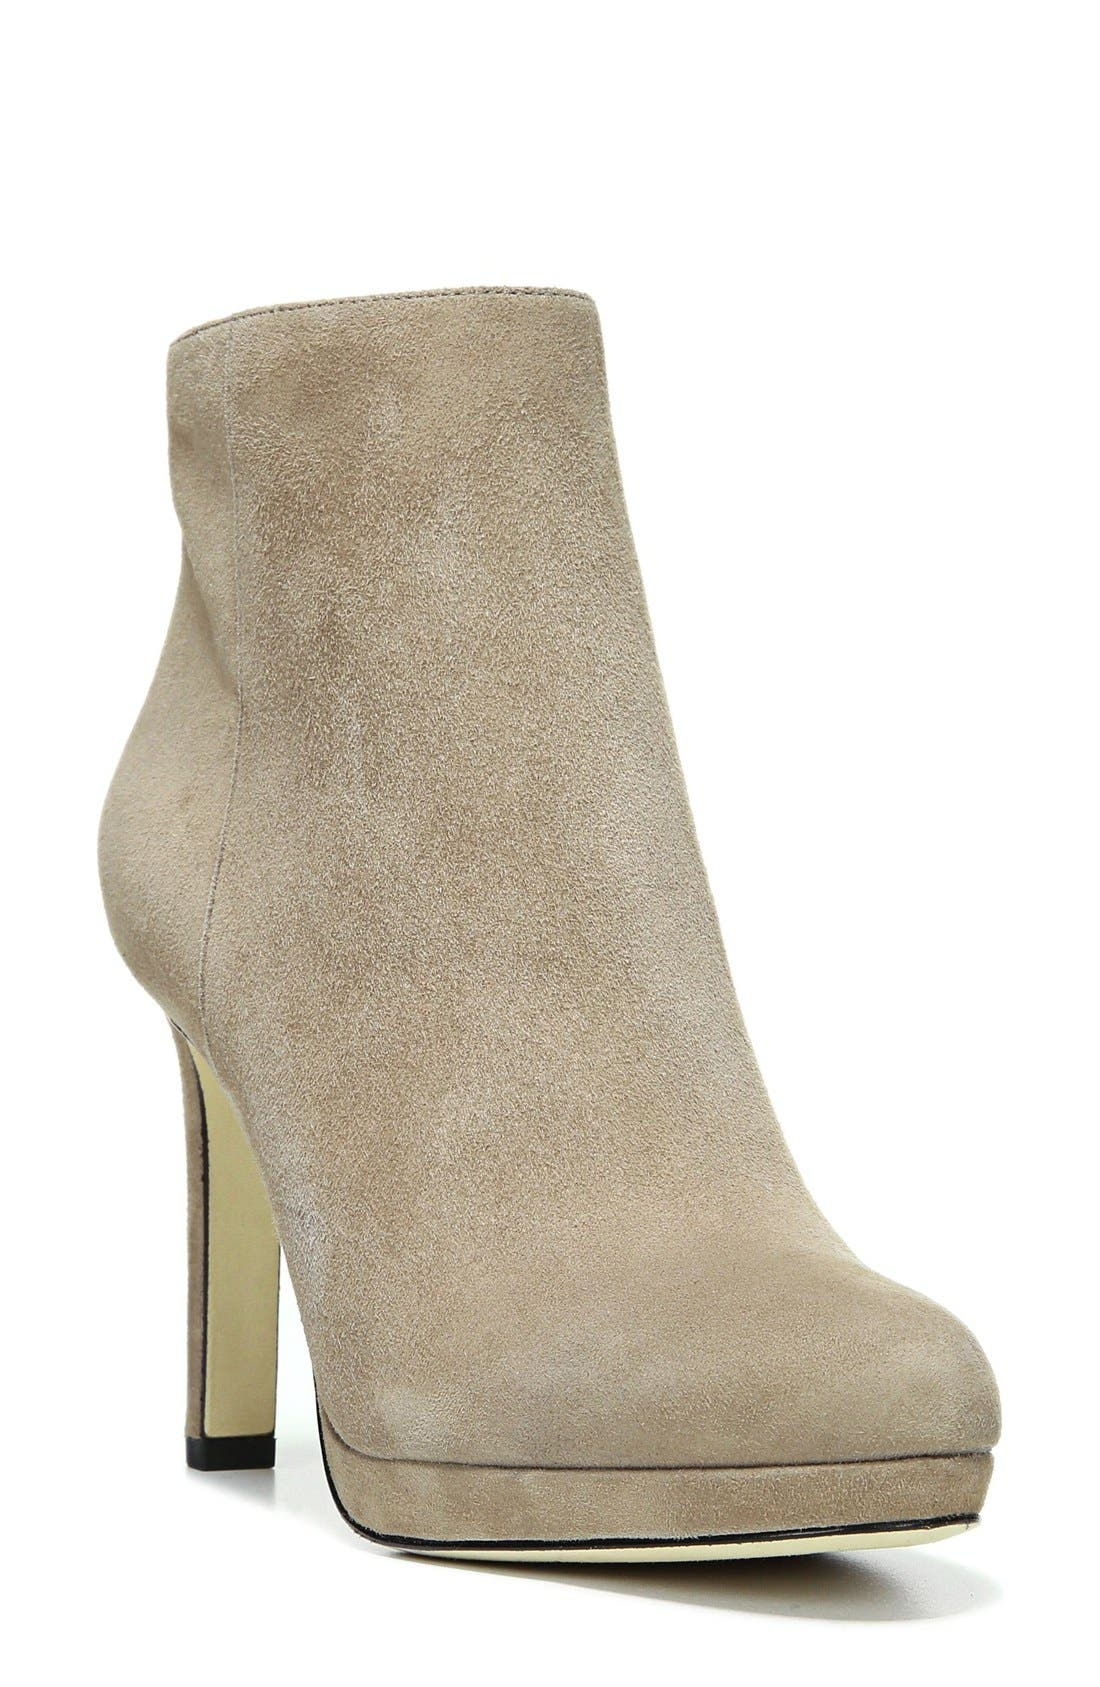 Main Image - Via Spiga Bettie Platform Bootie (Women)